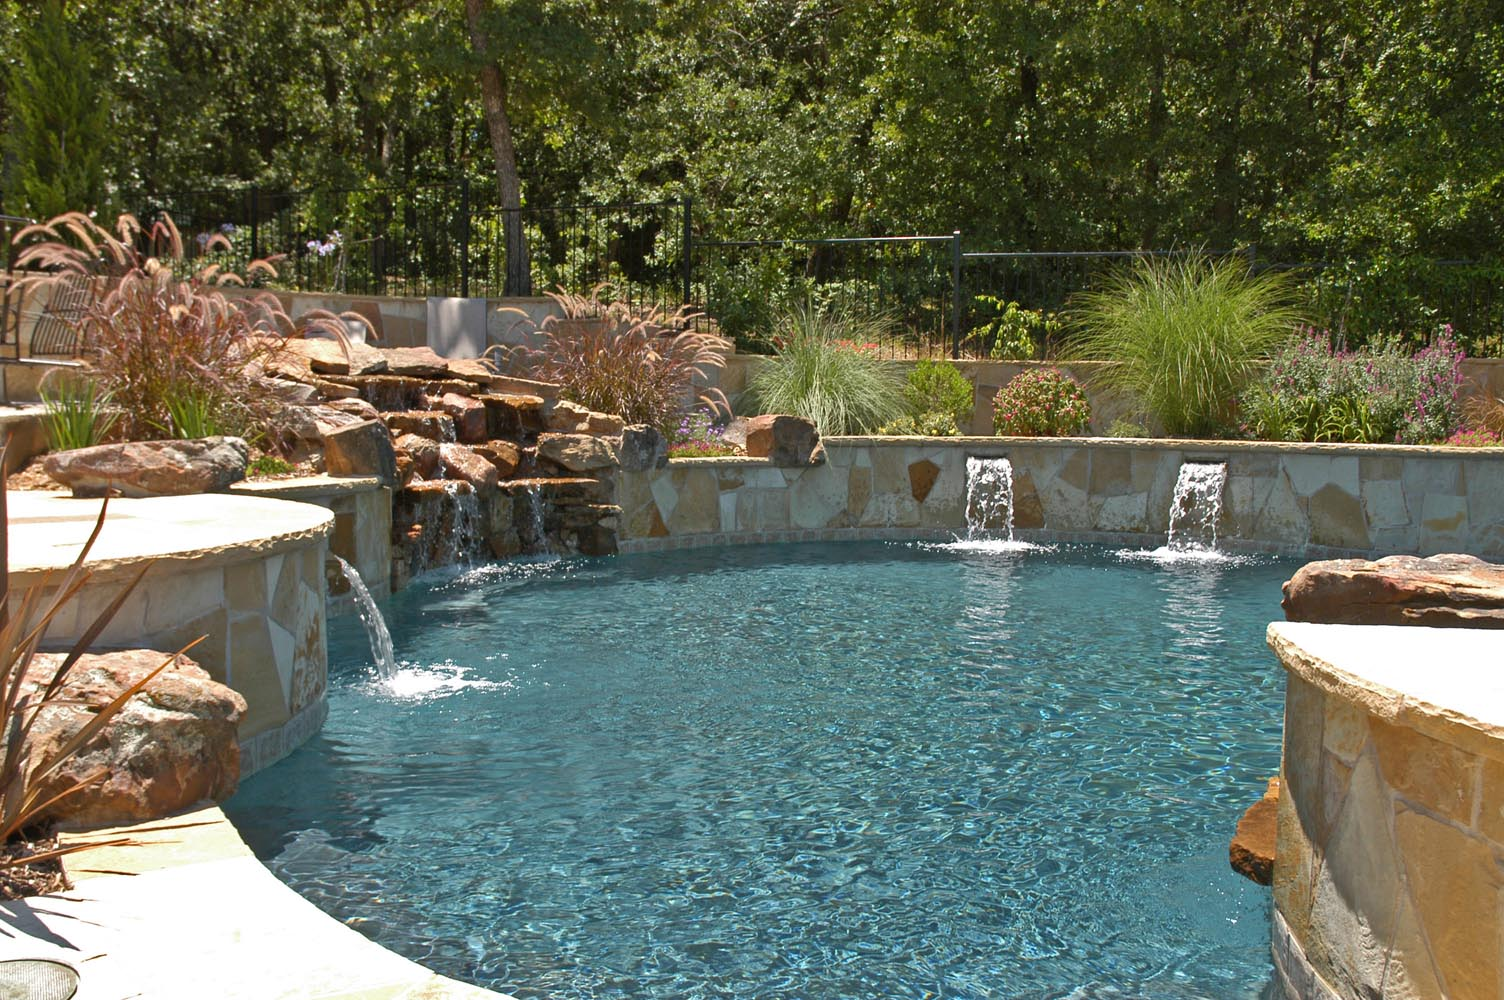 Living Pool Freeform Pools Photo Gallery, Custom Pools Images, Dallas